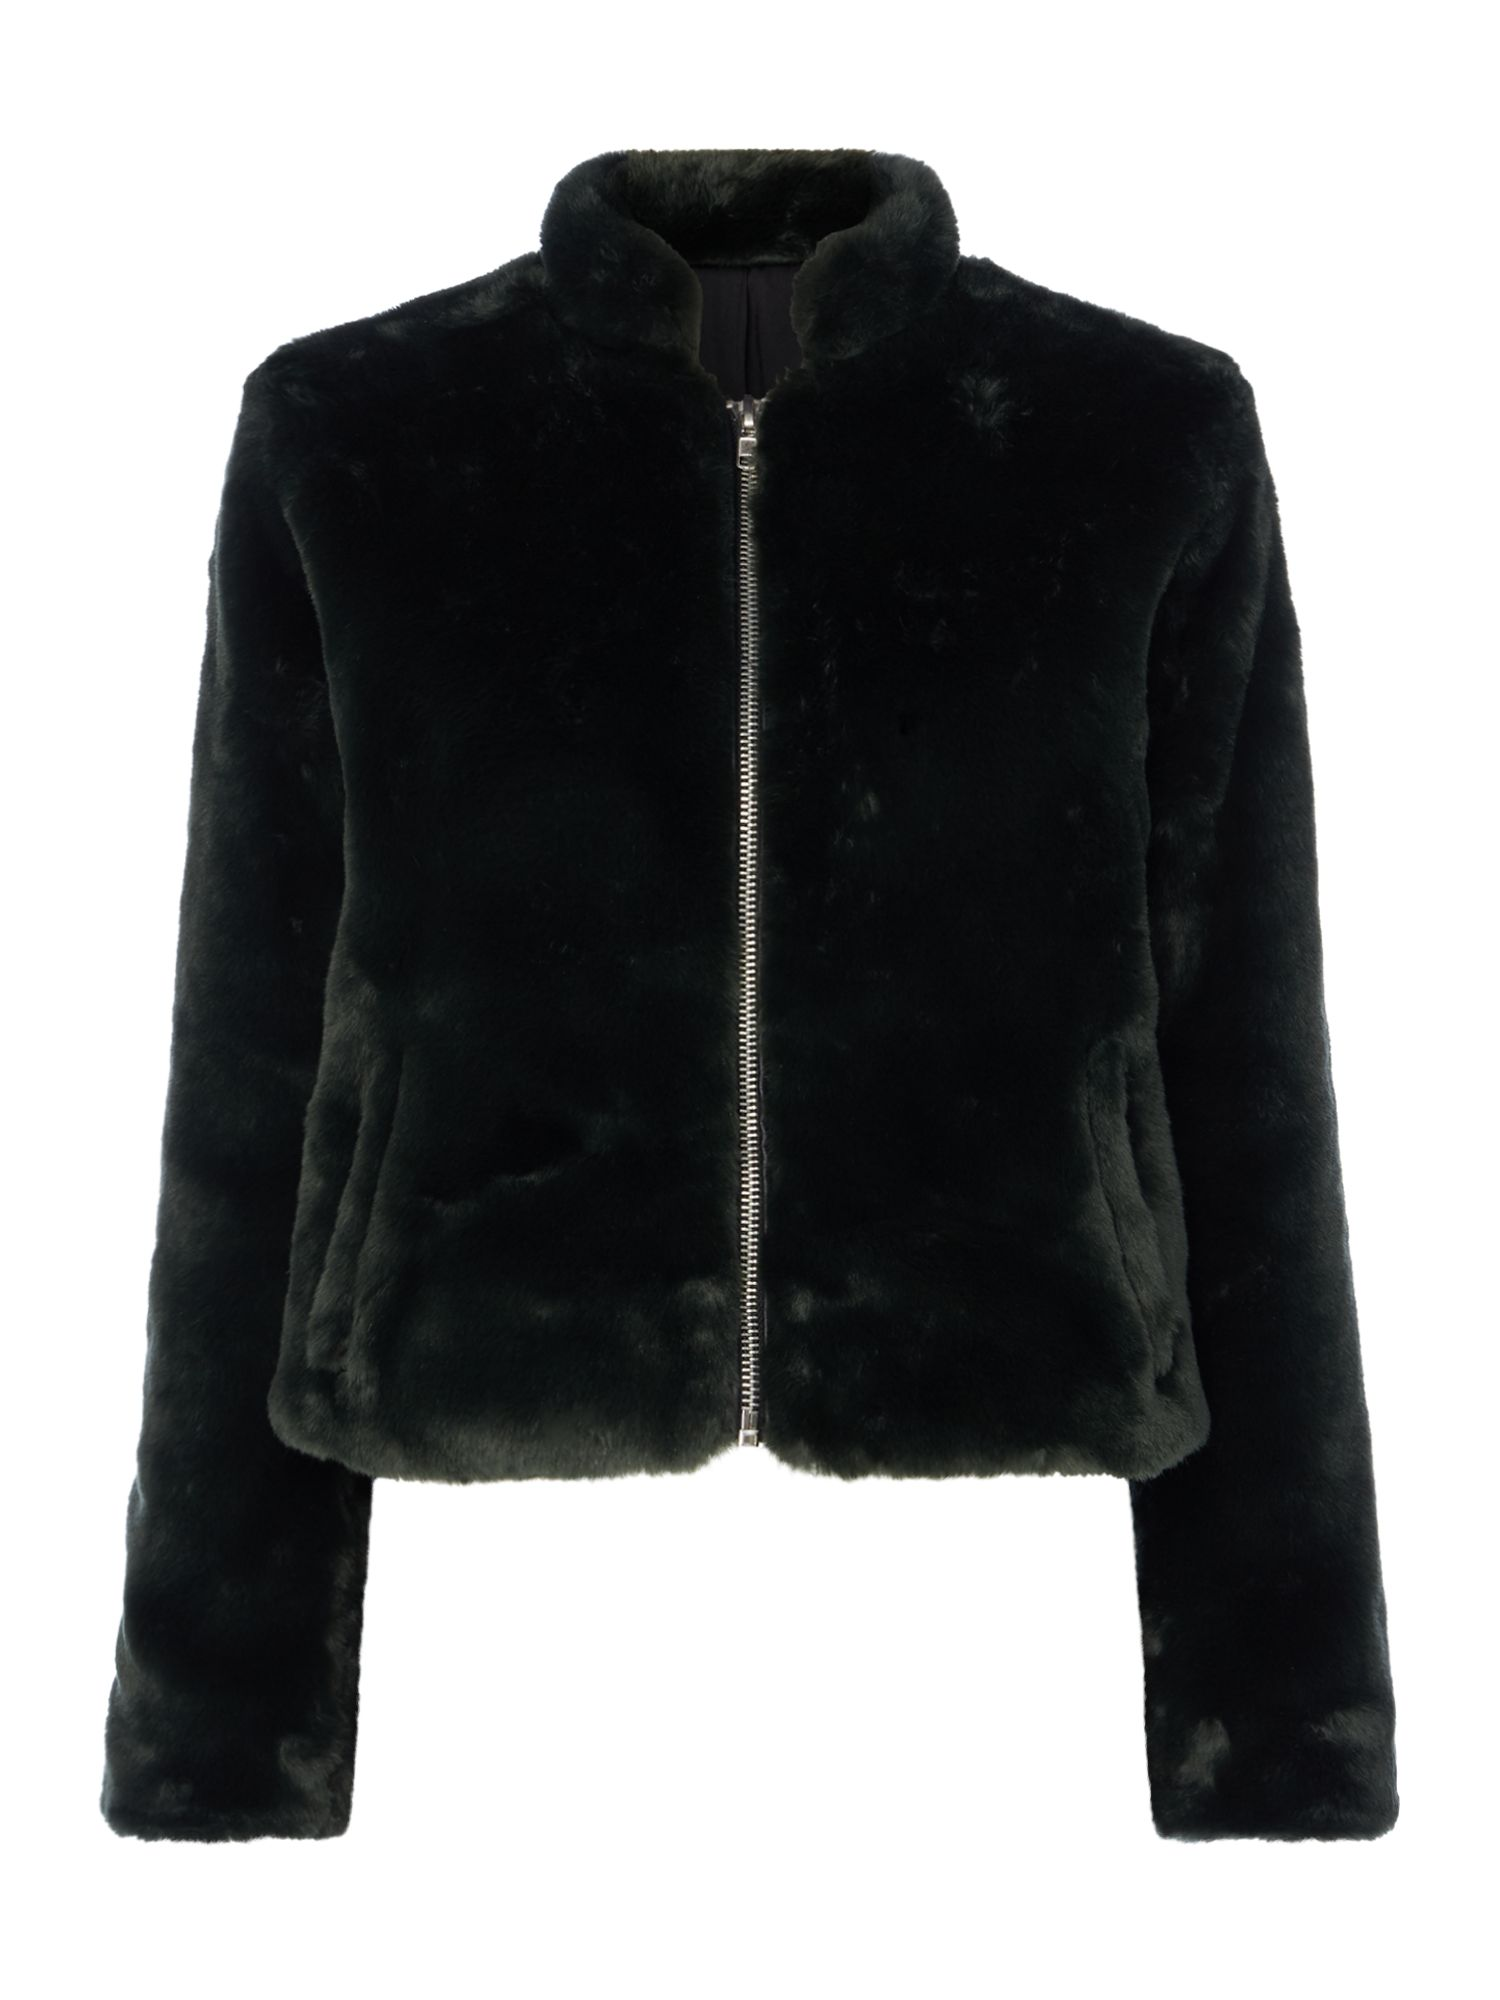 Free People Faux Fur Zip Up Bomber Jacket, Green